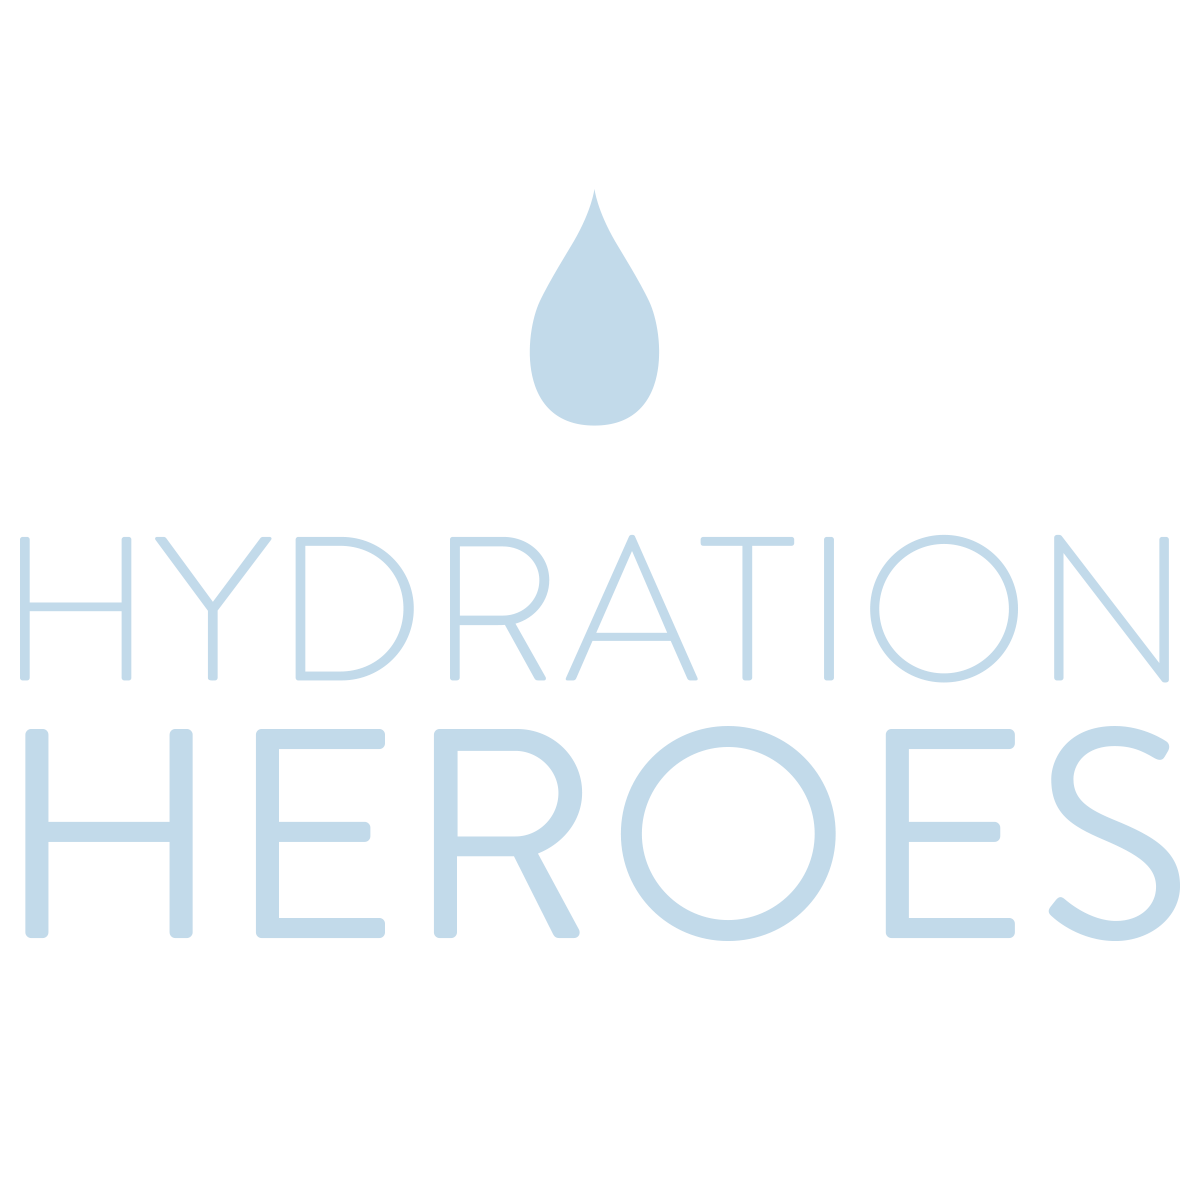 Hydration Heroes